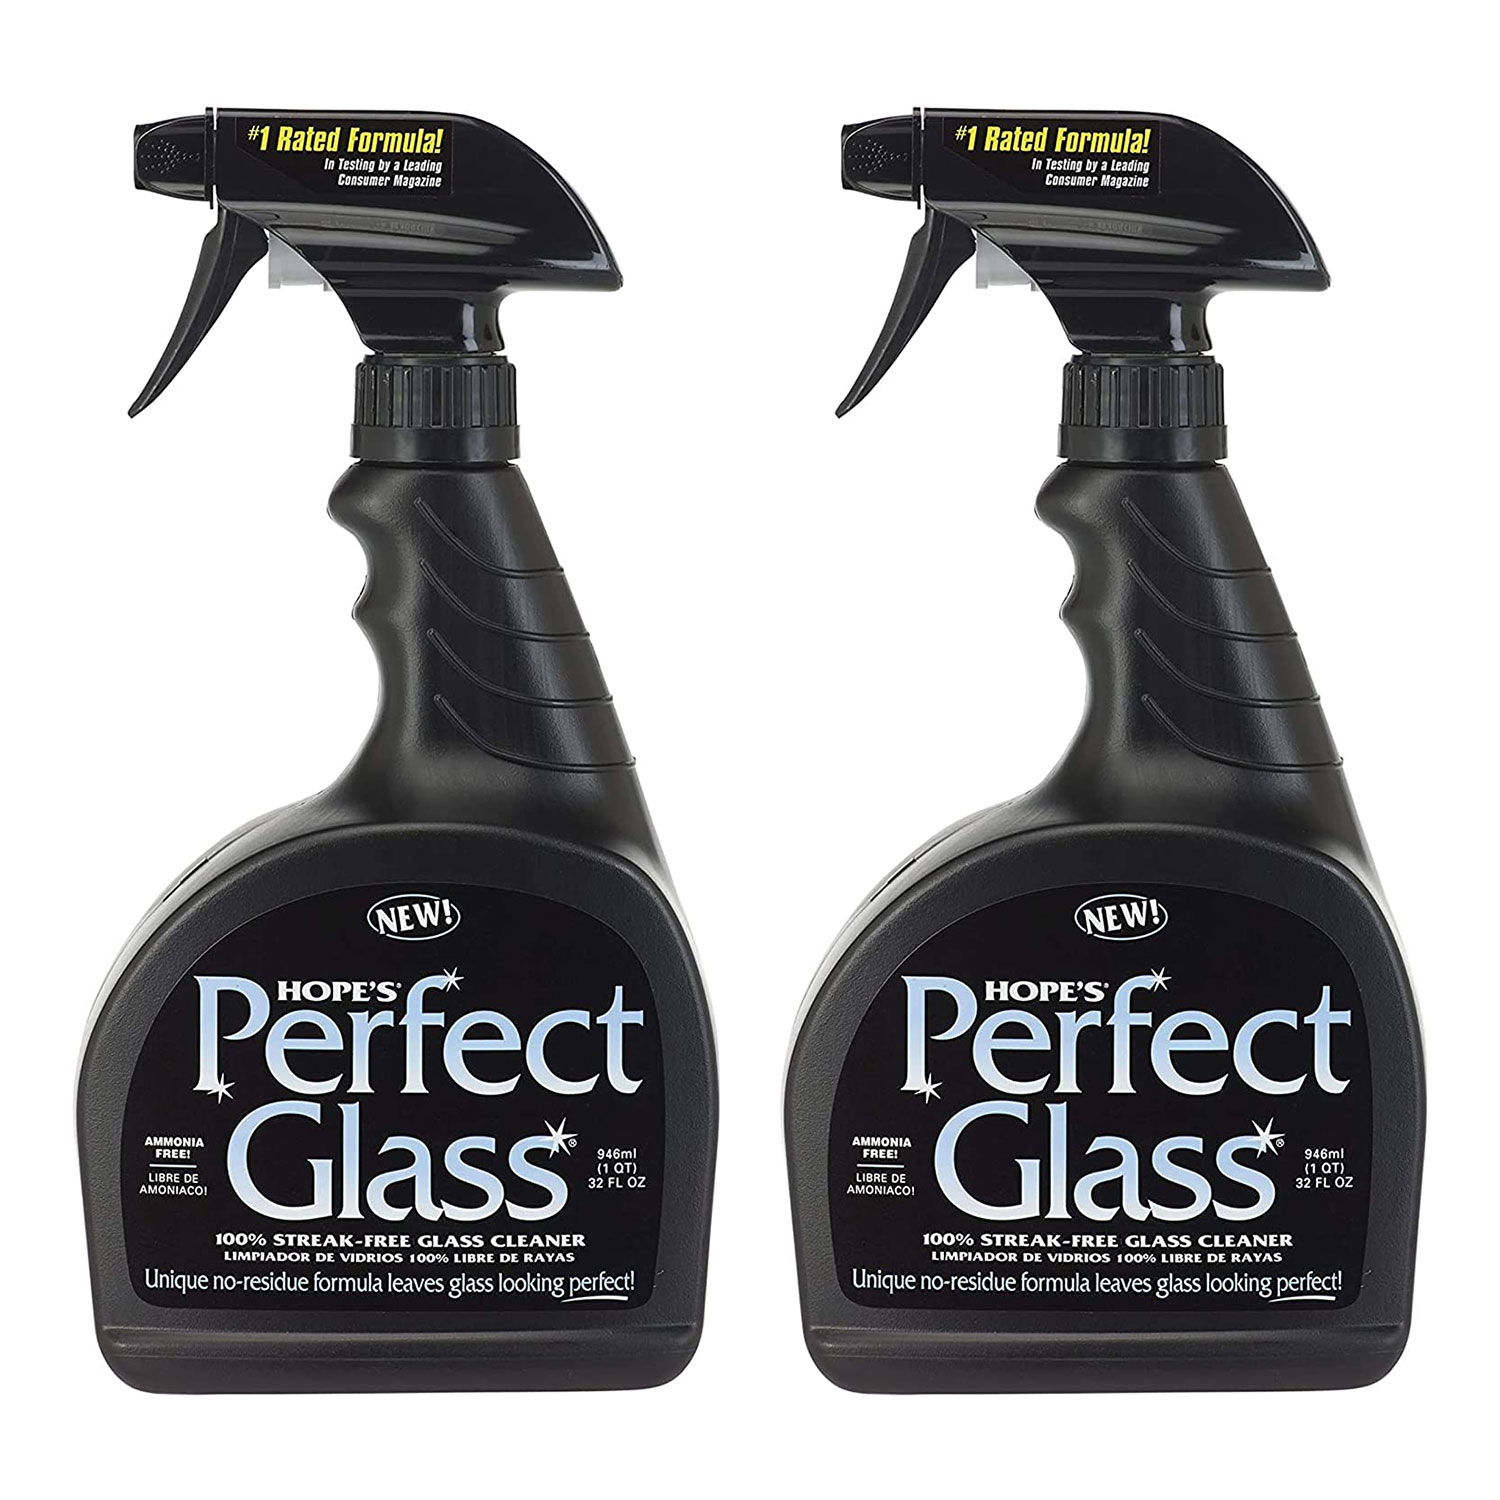 HOPE'S Perfect Streak-Free Glass Cleaner, Less Wiping